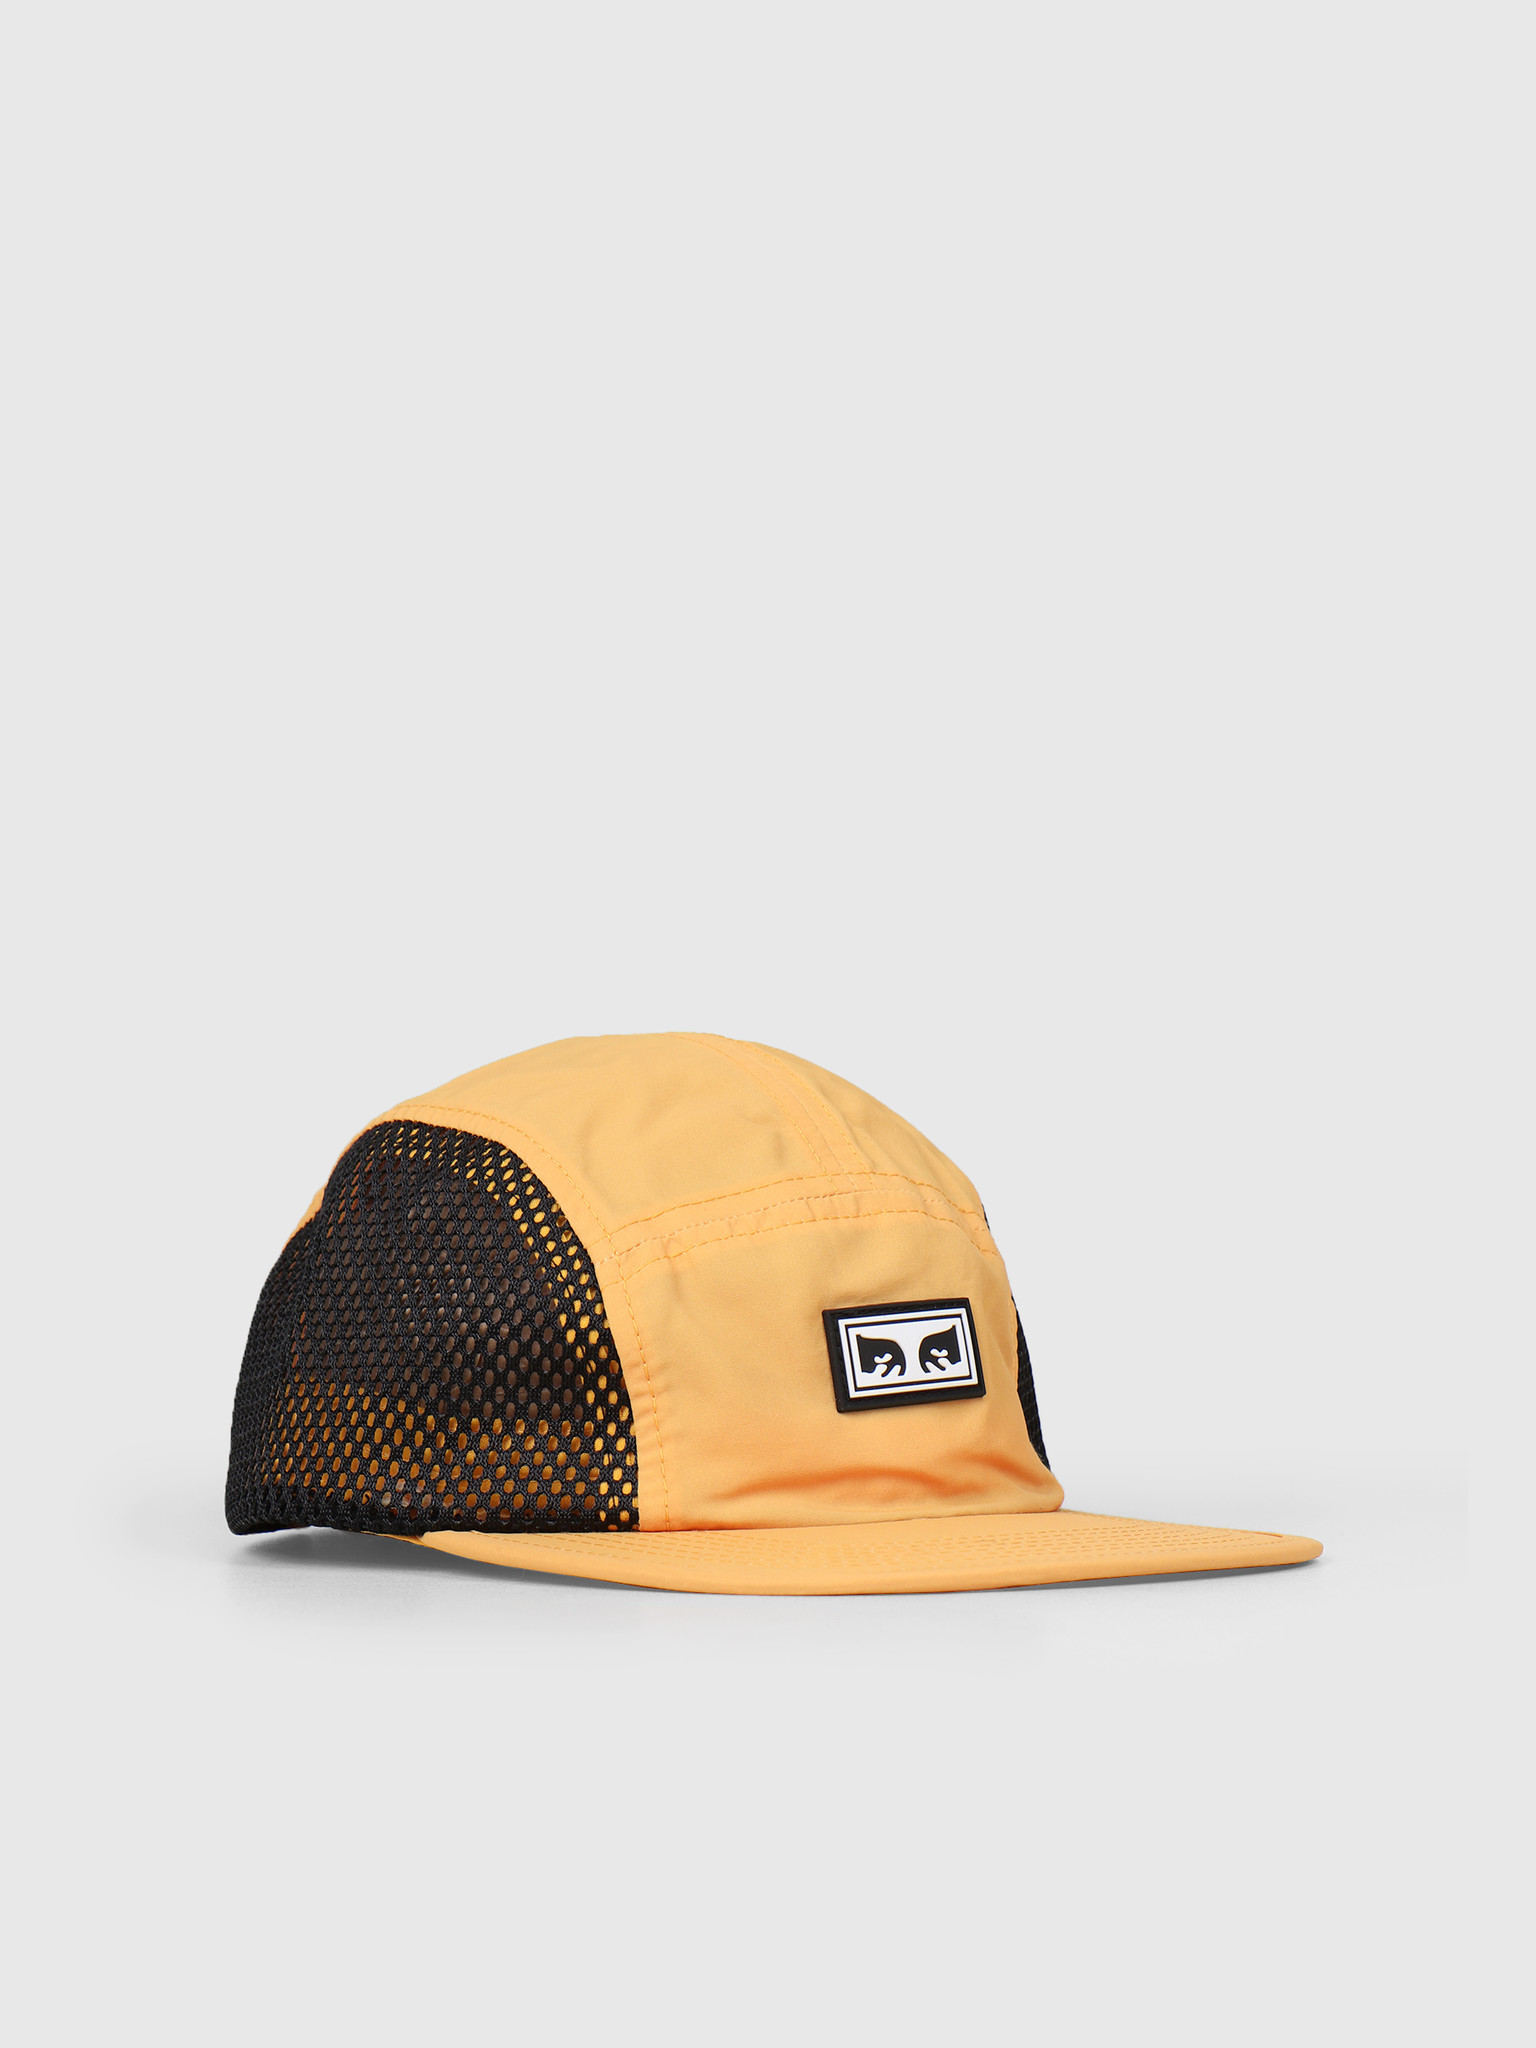 Obey Obey Alchemy 5 Panel Hat MRL 100490053